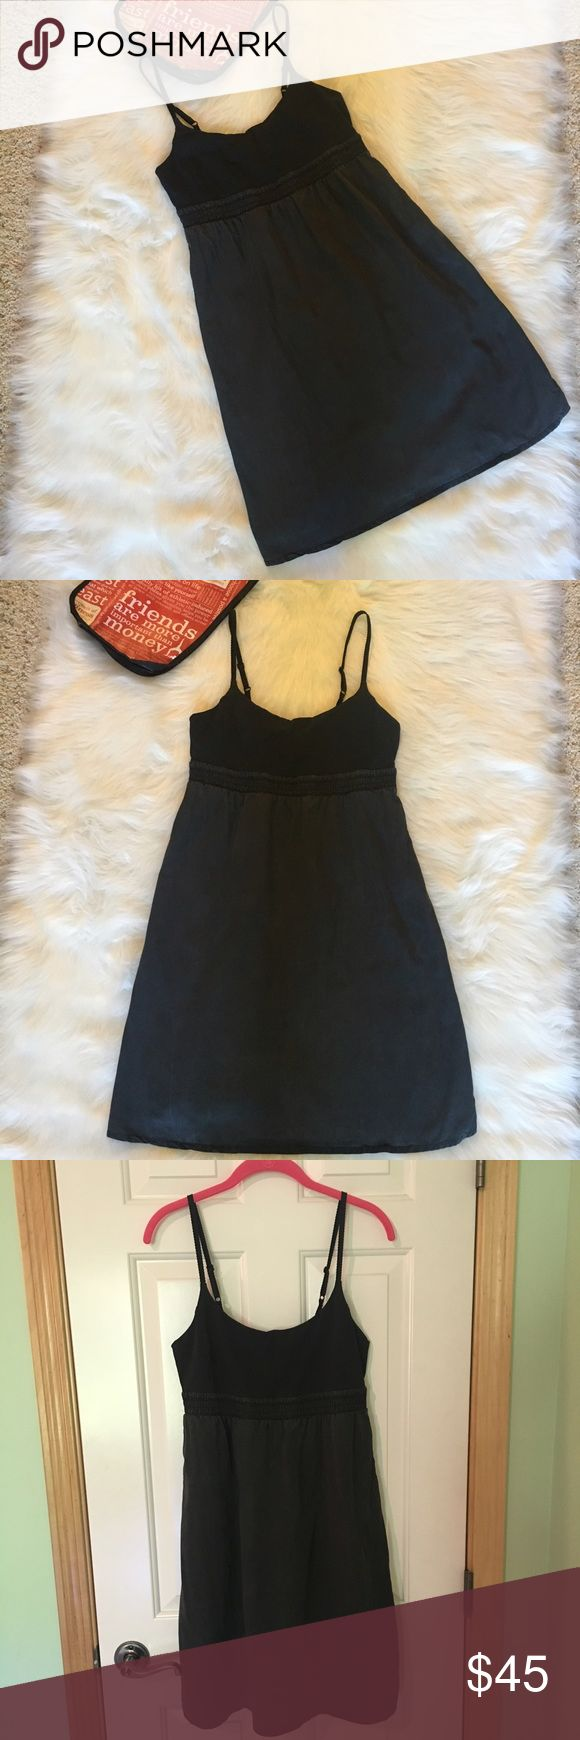 "lululemon athletica dress lululemon dress size 10.  Charcoal gray and black.  Built in support with the option to add padding.  Removable padding not included.  Adjustable straps.  Hidden side pockets.  Measures approximately 36"" depending on length of straps.  Bottom part is made with a cotton/ tencel like fabric.  It's not satin, but it looks like a brushed satin and bottom does not stretch but is very flowy and roomy, and lined.  Top is stretchy, elastic  band under chest measures 15""…"